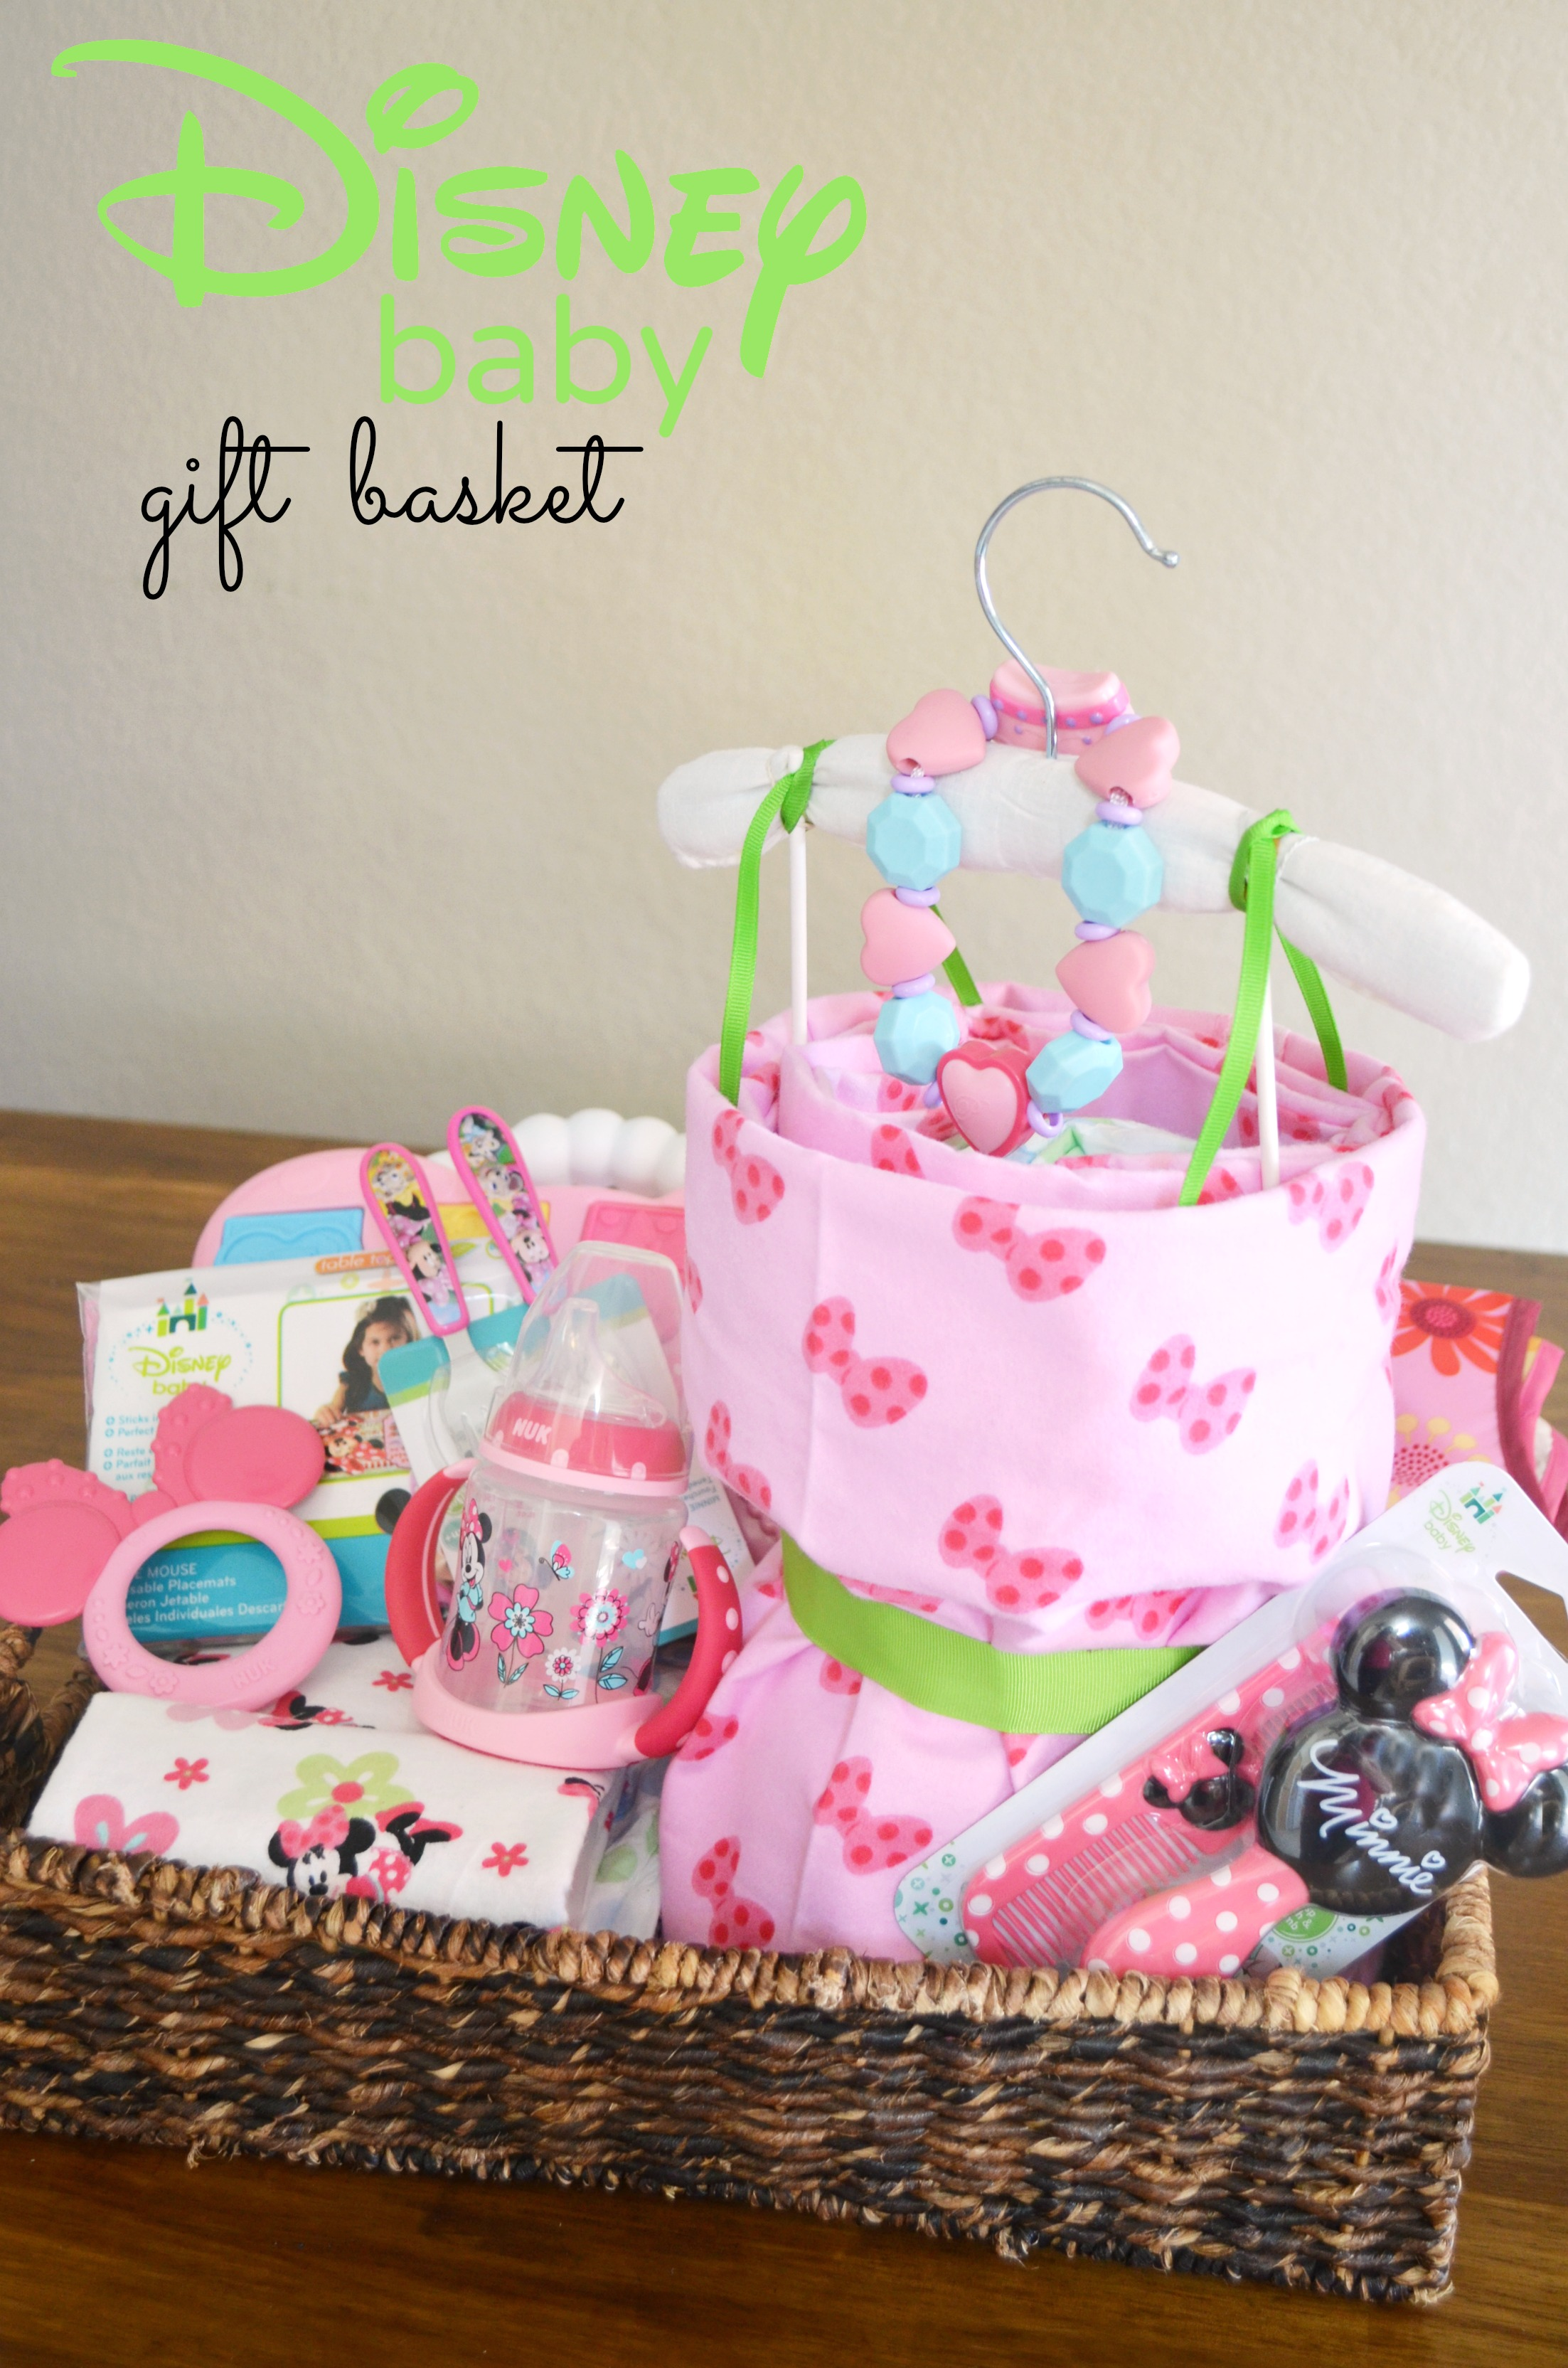 Princess Diaper Cake Creating The Perfect Disney Baby Gift Basket Walmart Ad